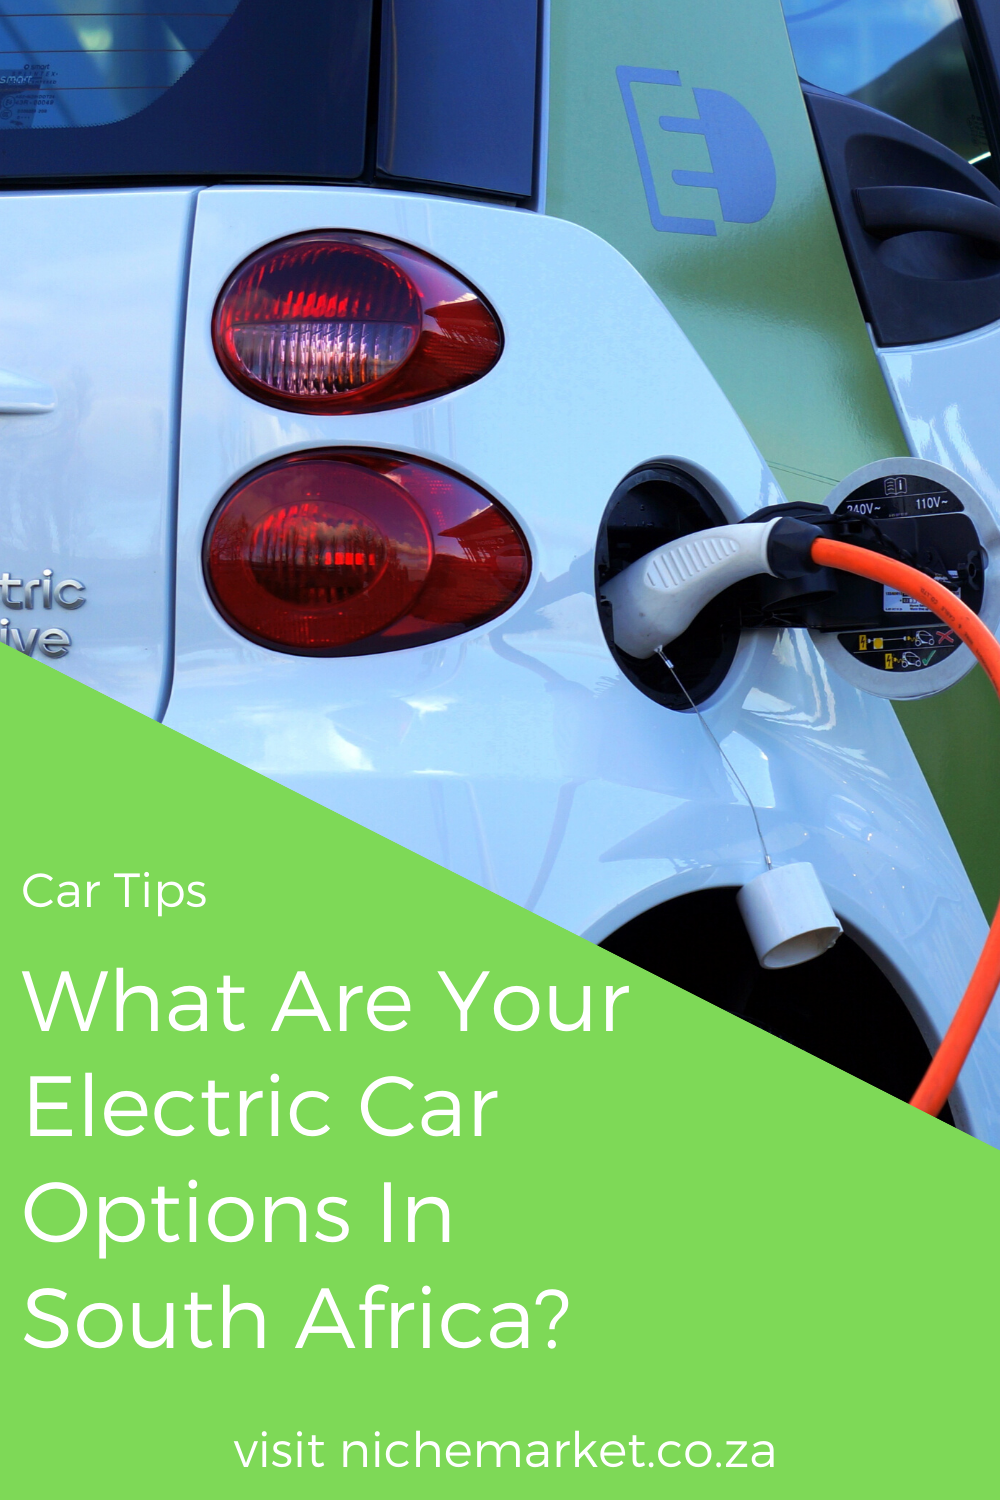 If you're a South African who wants to move over to an electric motor vehicle, you'll quickly find that your pickings are rather slim. However, there are a few options available, we've put together a list of electric cars available for purchase in South Africa  #EMV #electriccar